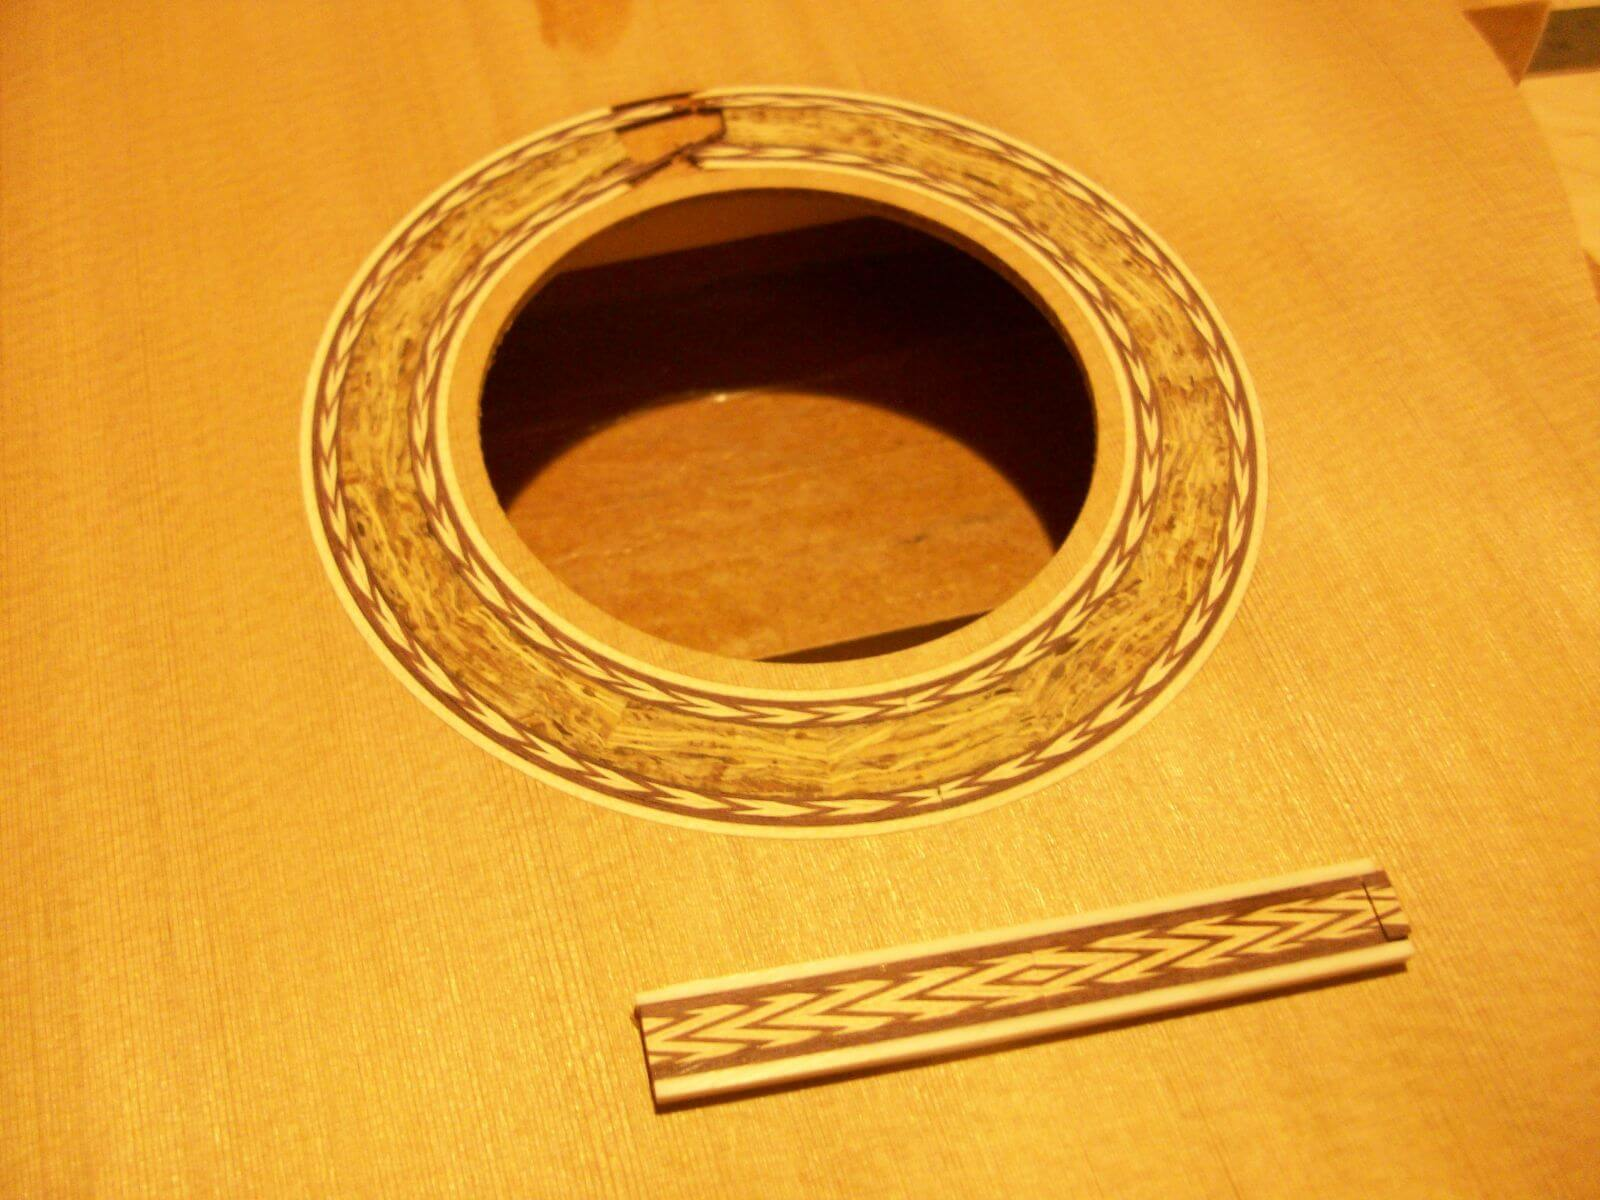 Zebulon Turrentine Rosette and Tie Block Inlay